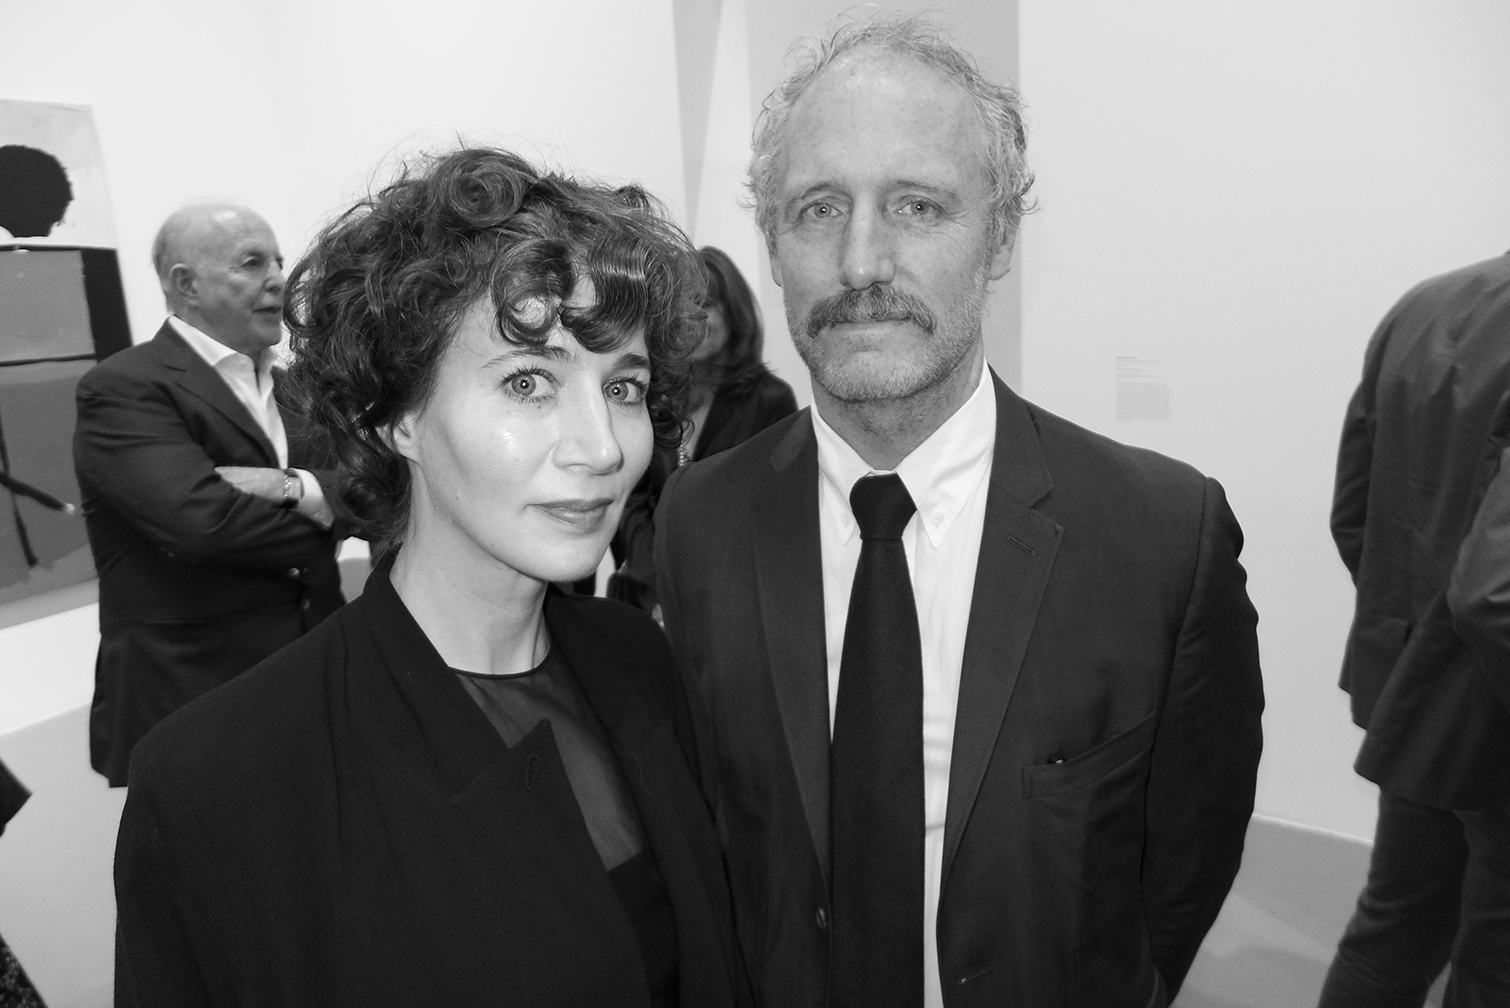 Miranda July and Mike Mills